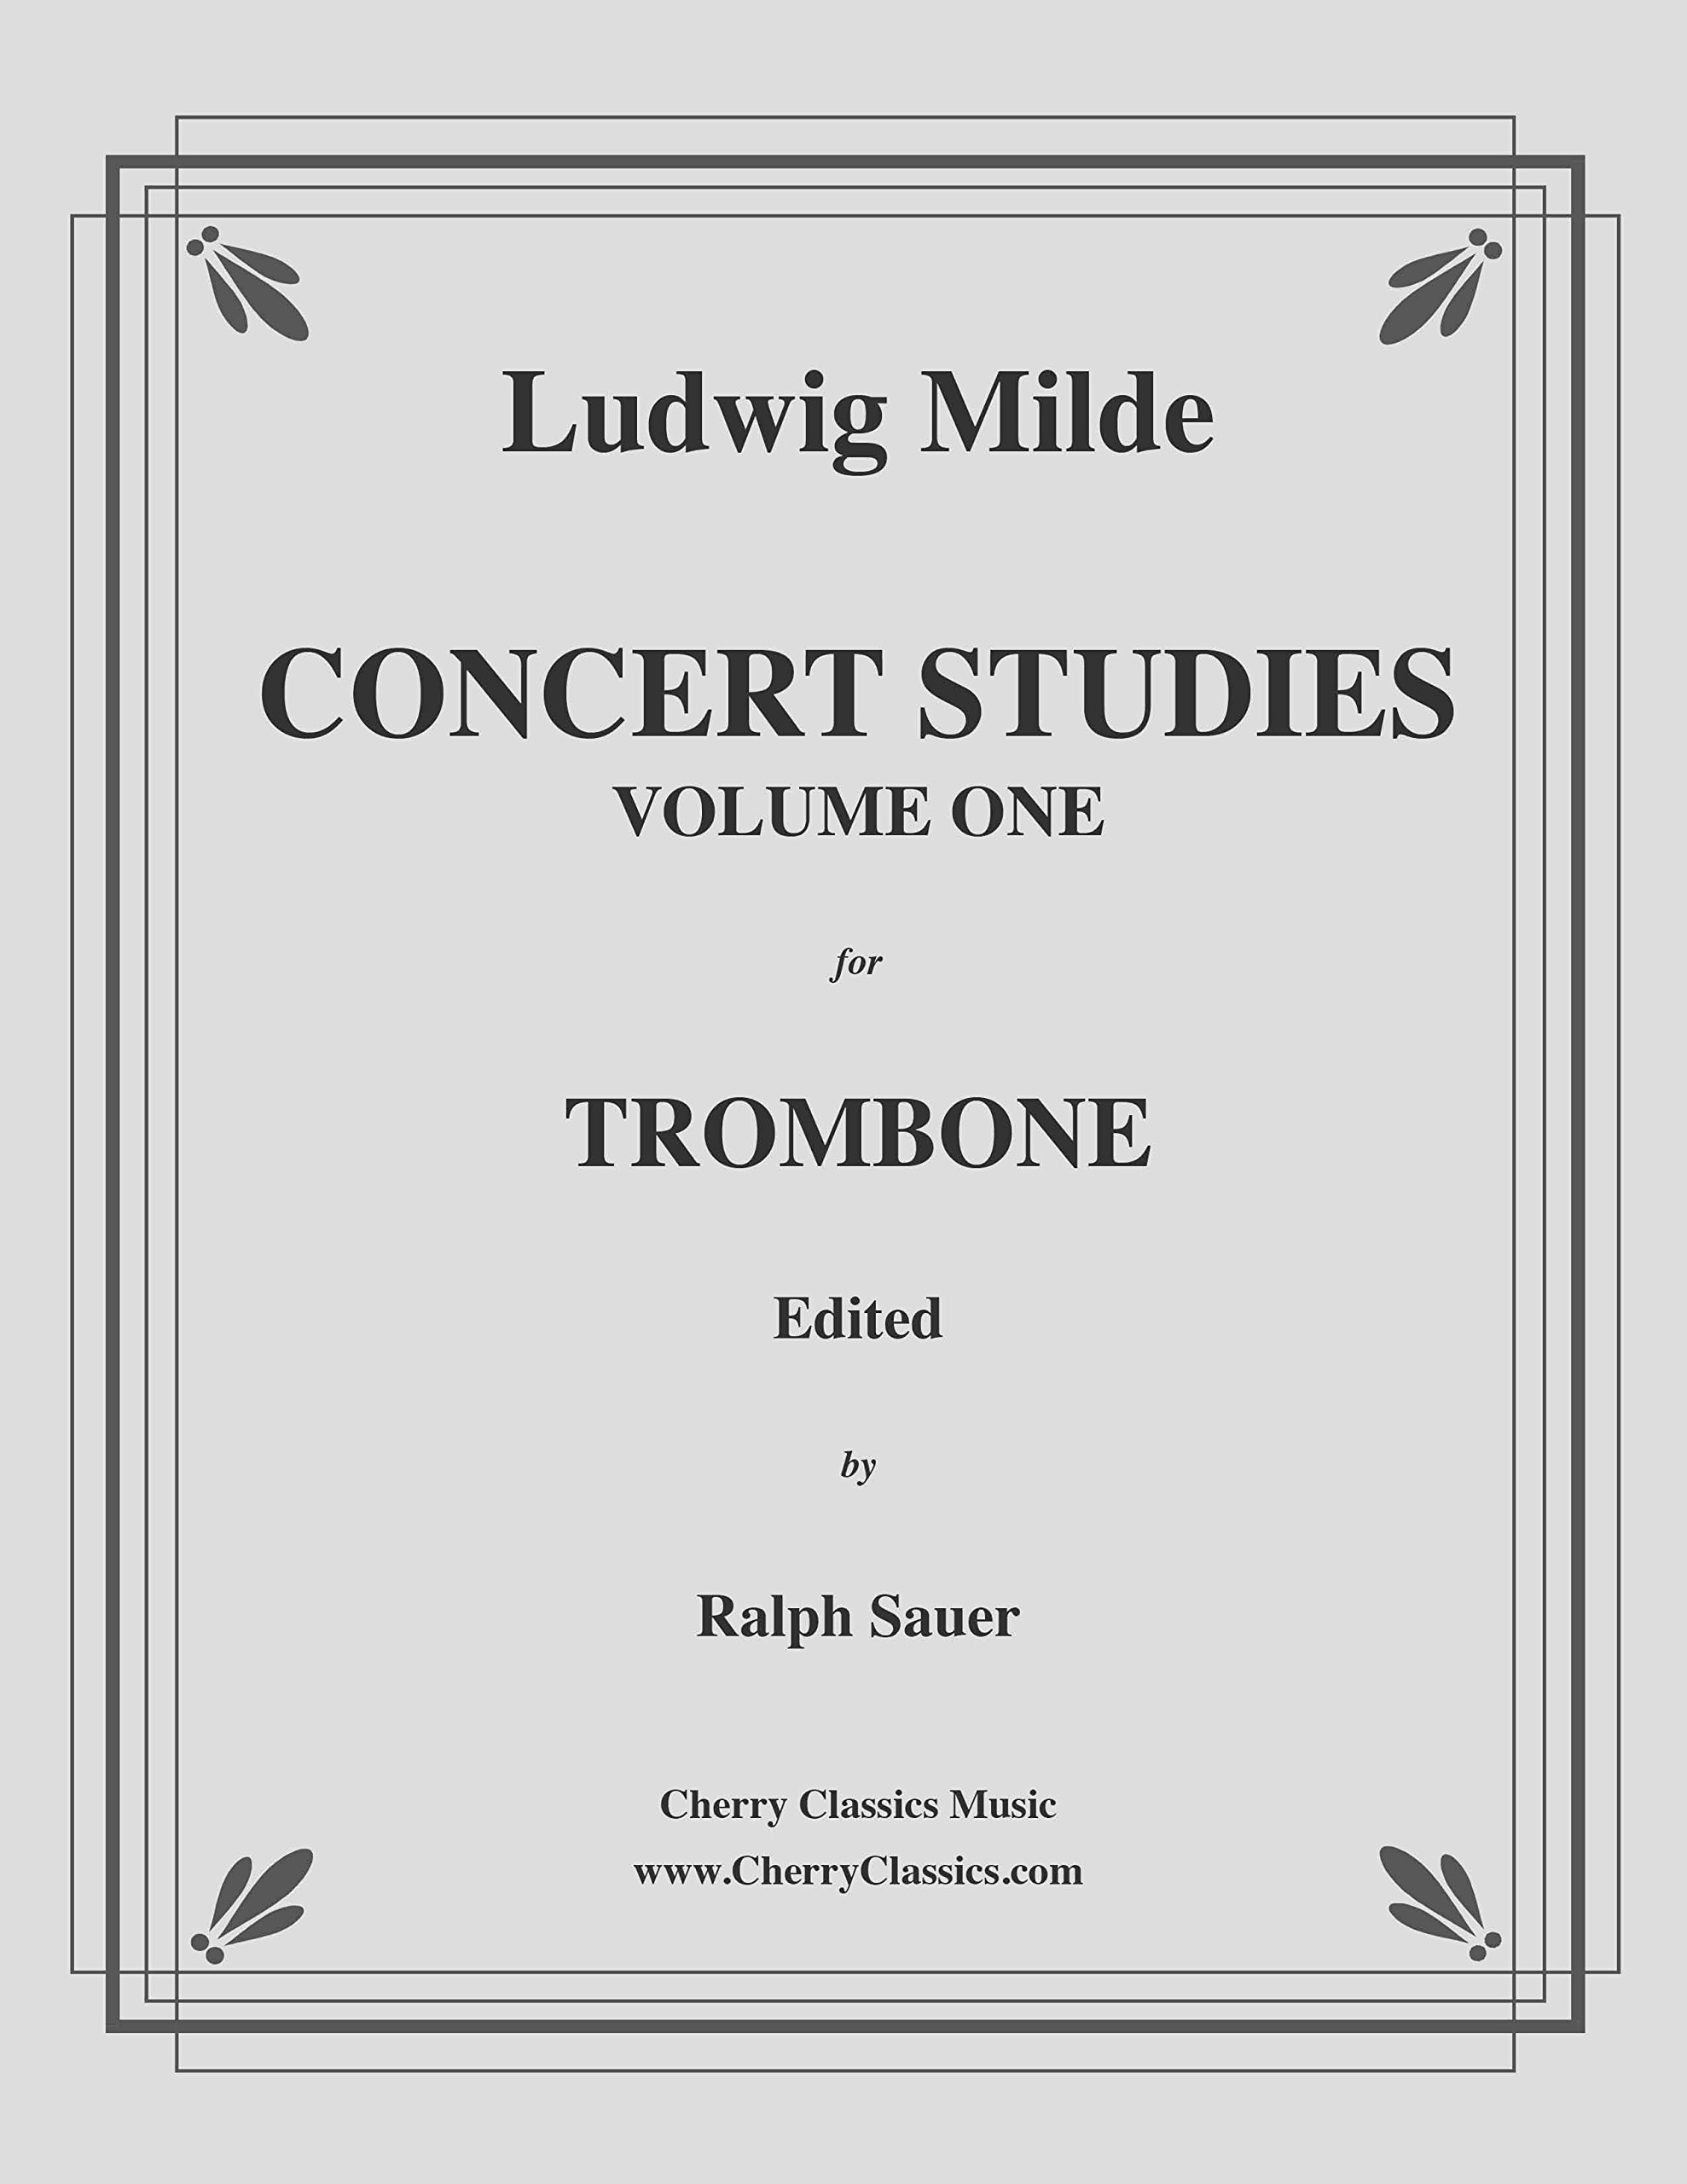 Concert Studies for Trombone, Volume 1 edited by Ralph Sauer